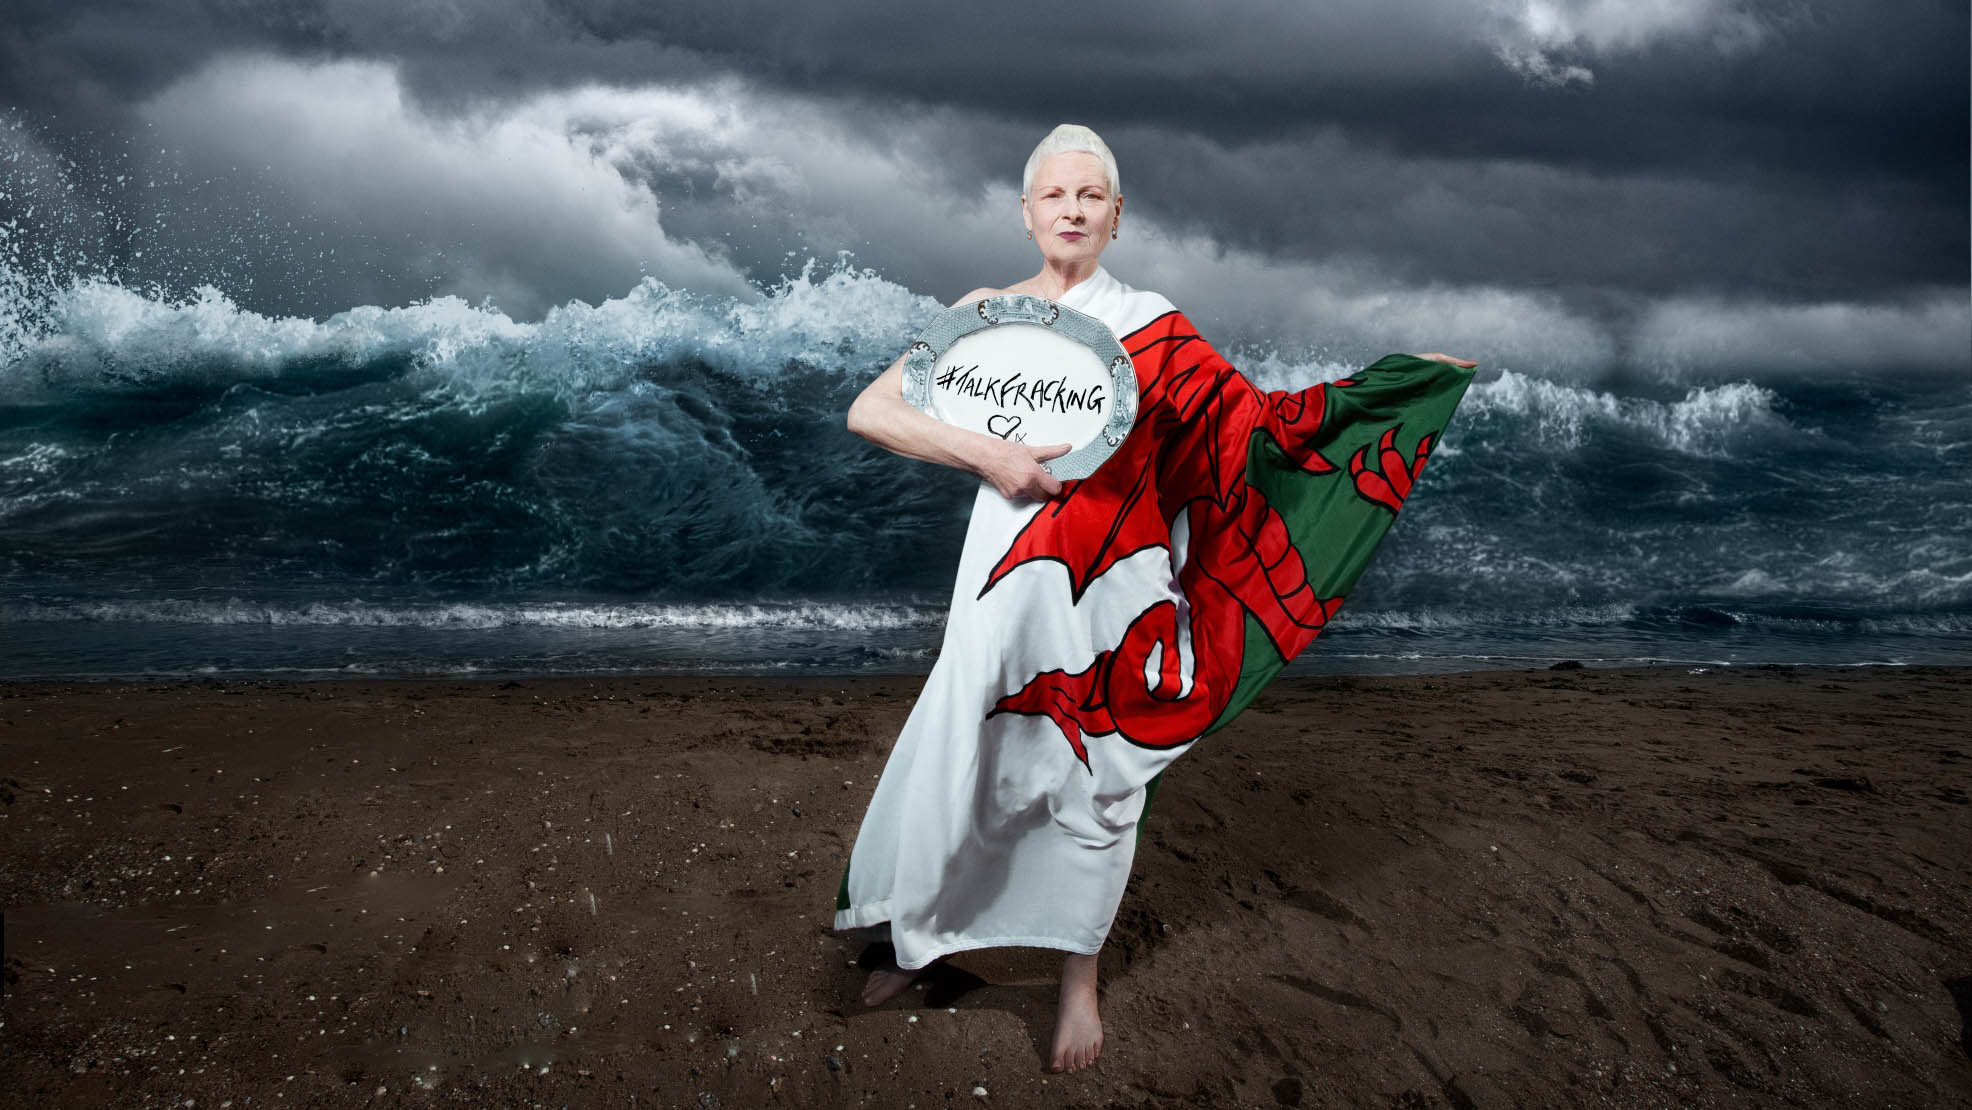 Vivienne Westwood June 2014 on the beach in Swansea for Talk Fracking